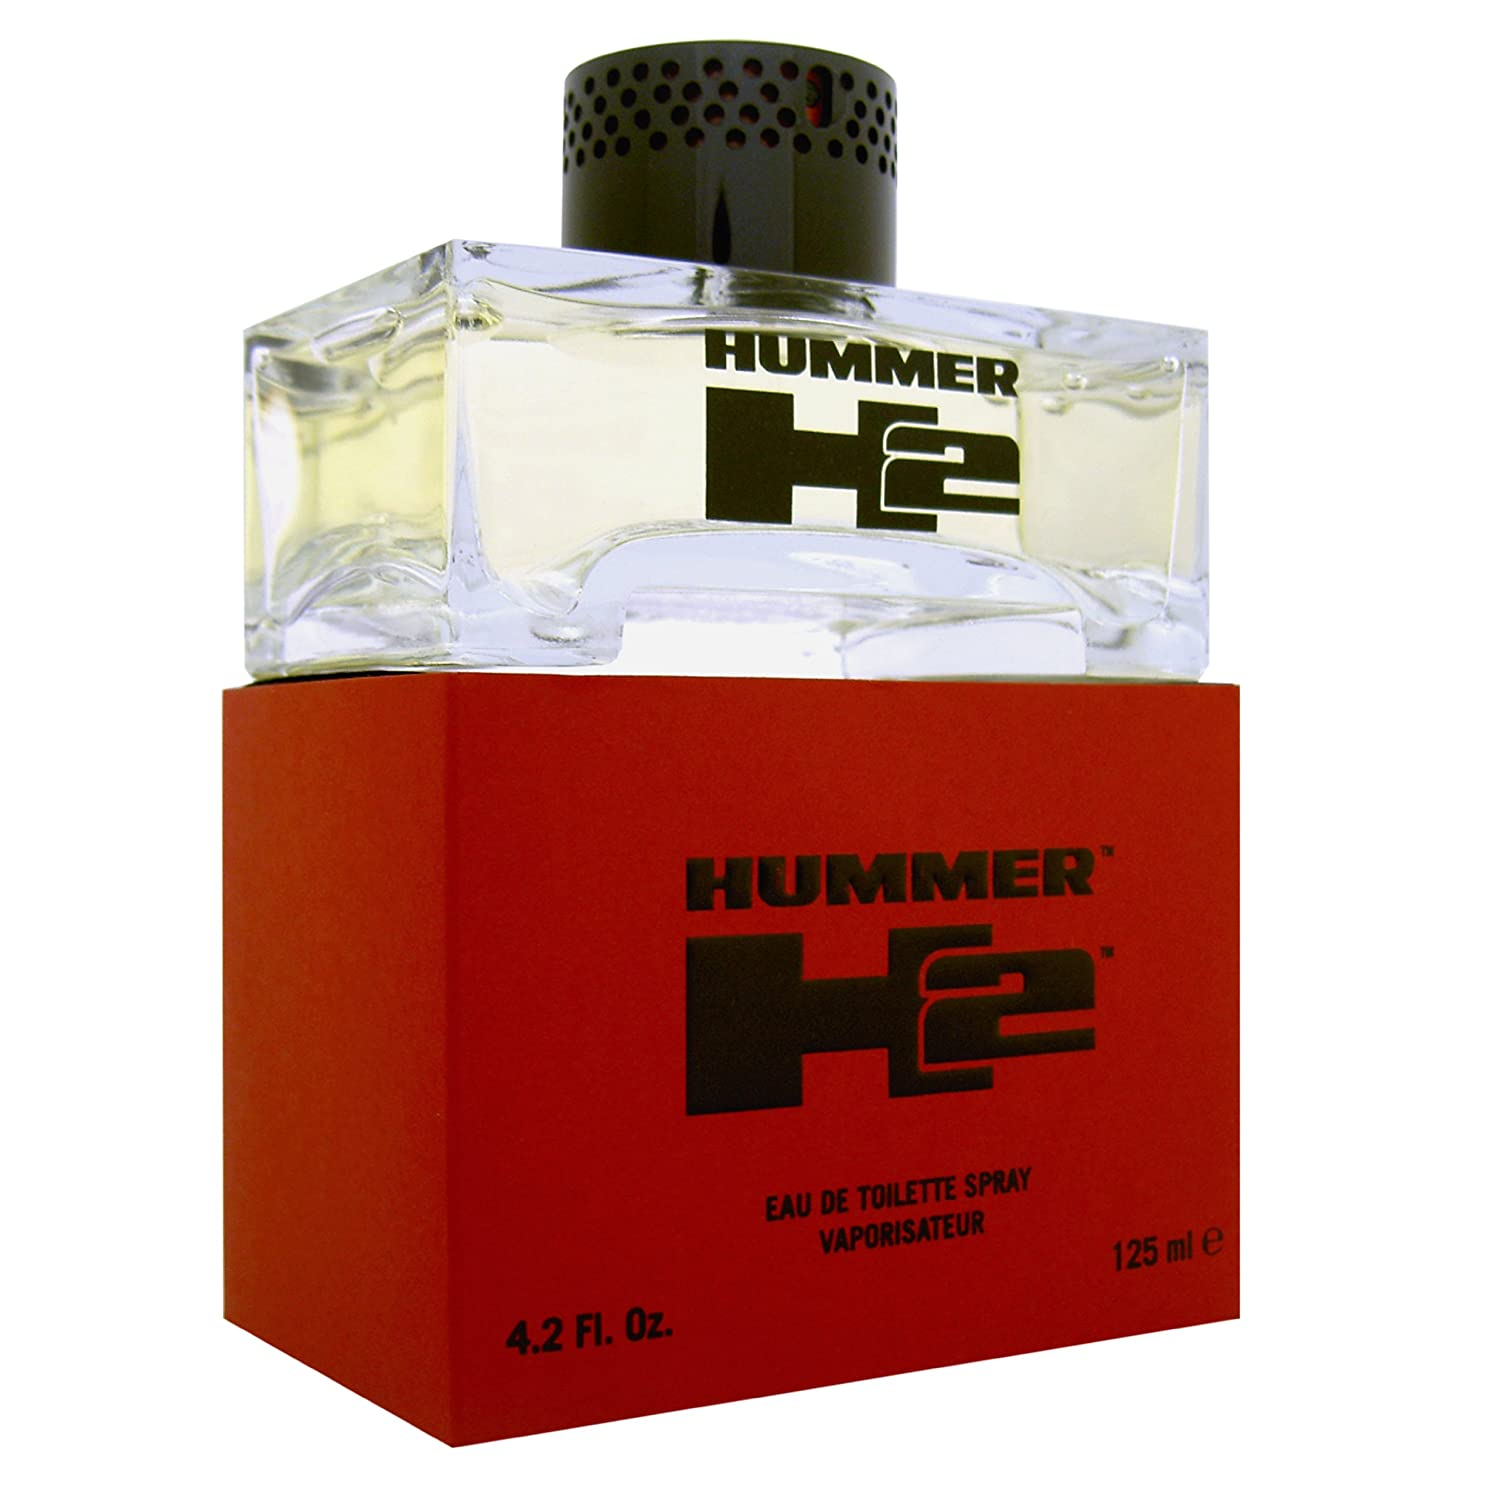 Hummer 2 141261 4.2oz Eau De Toilette Spray For Men 14334m